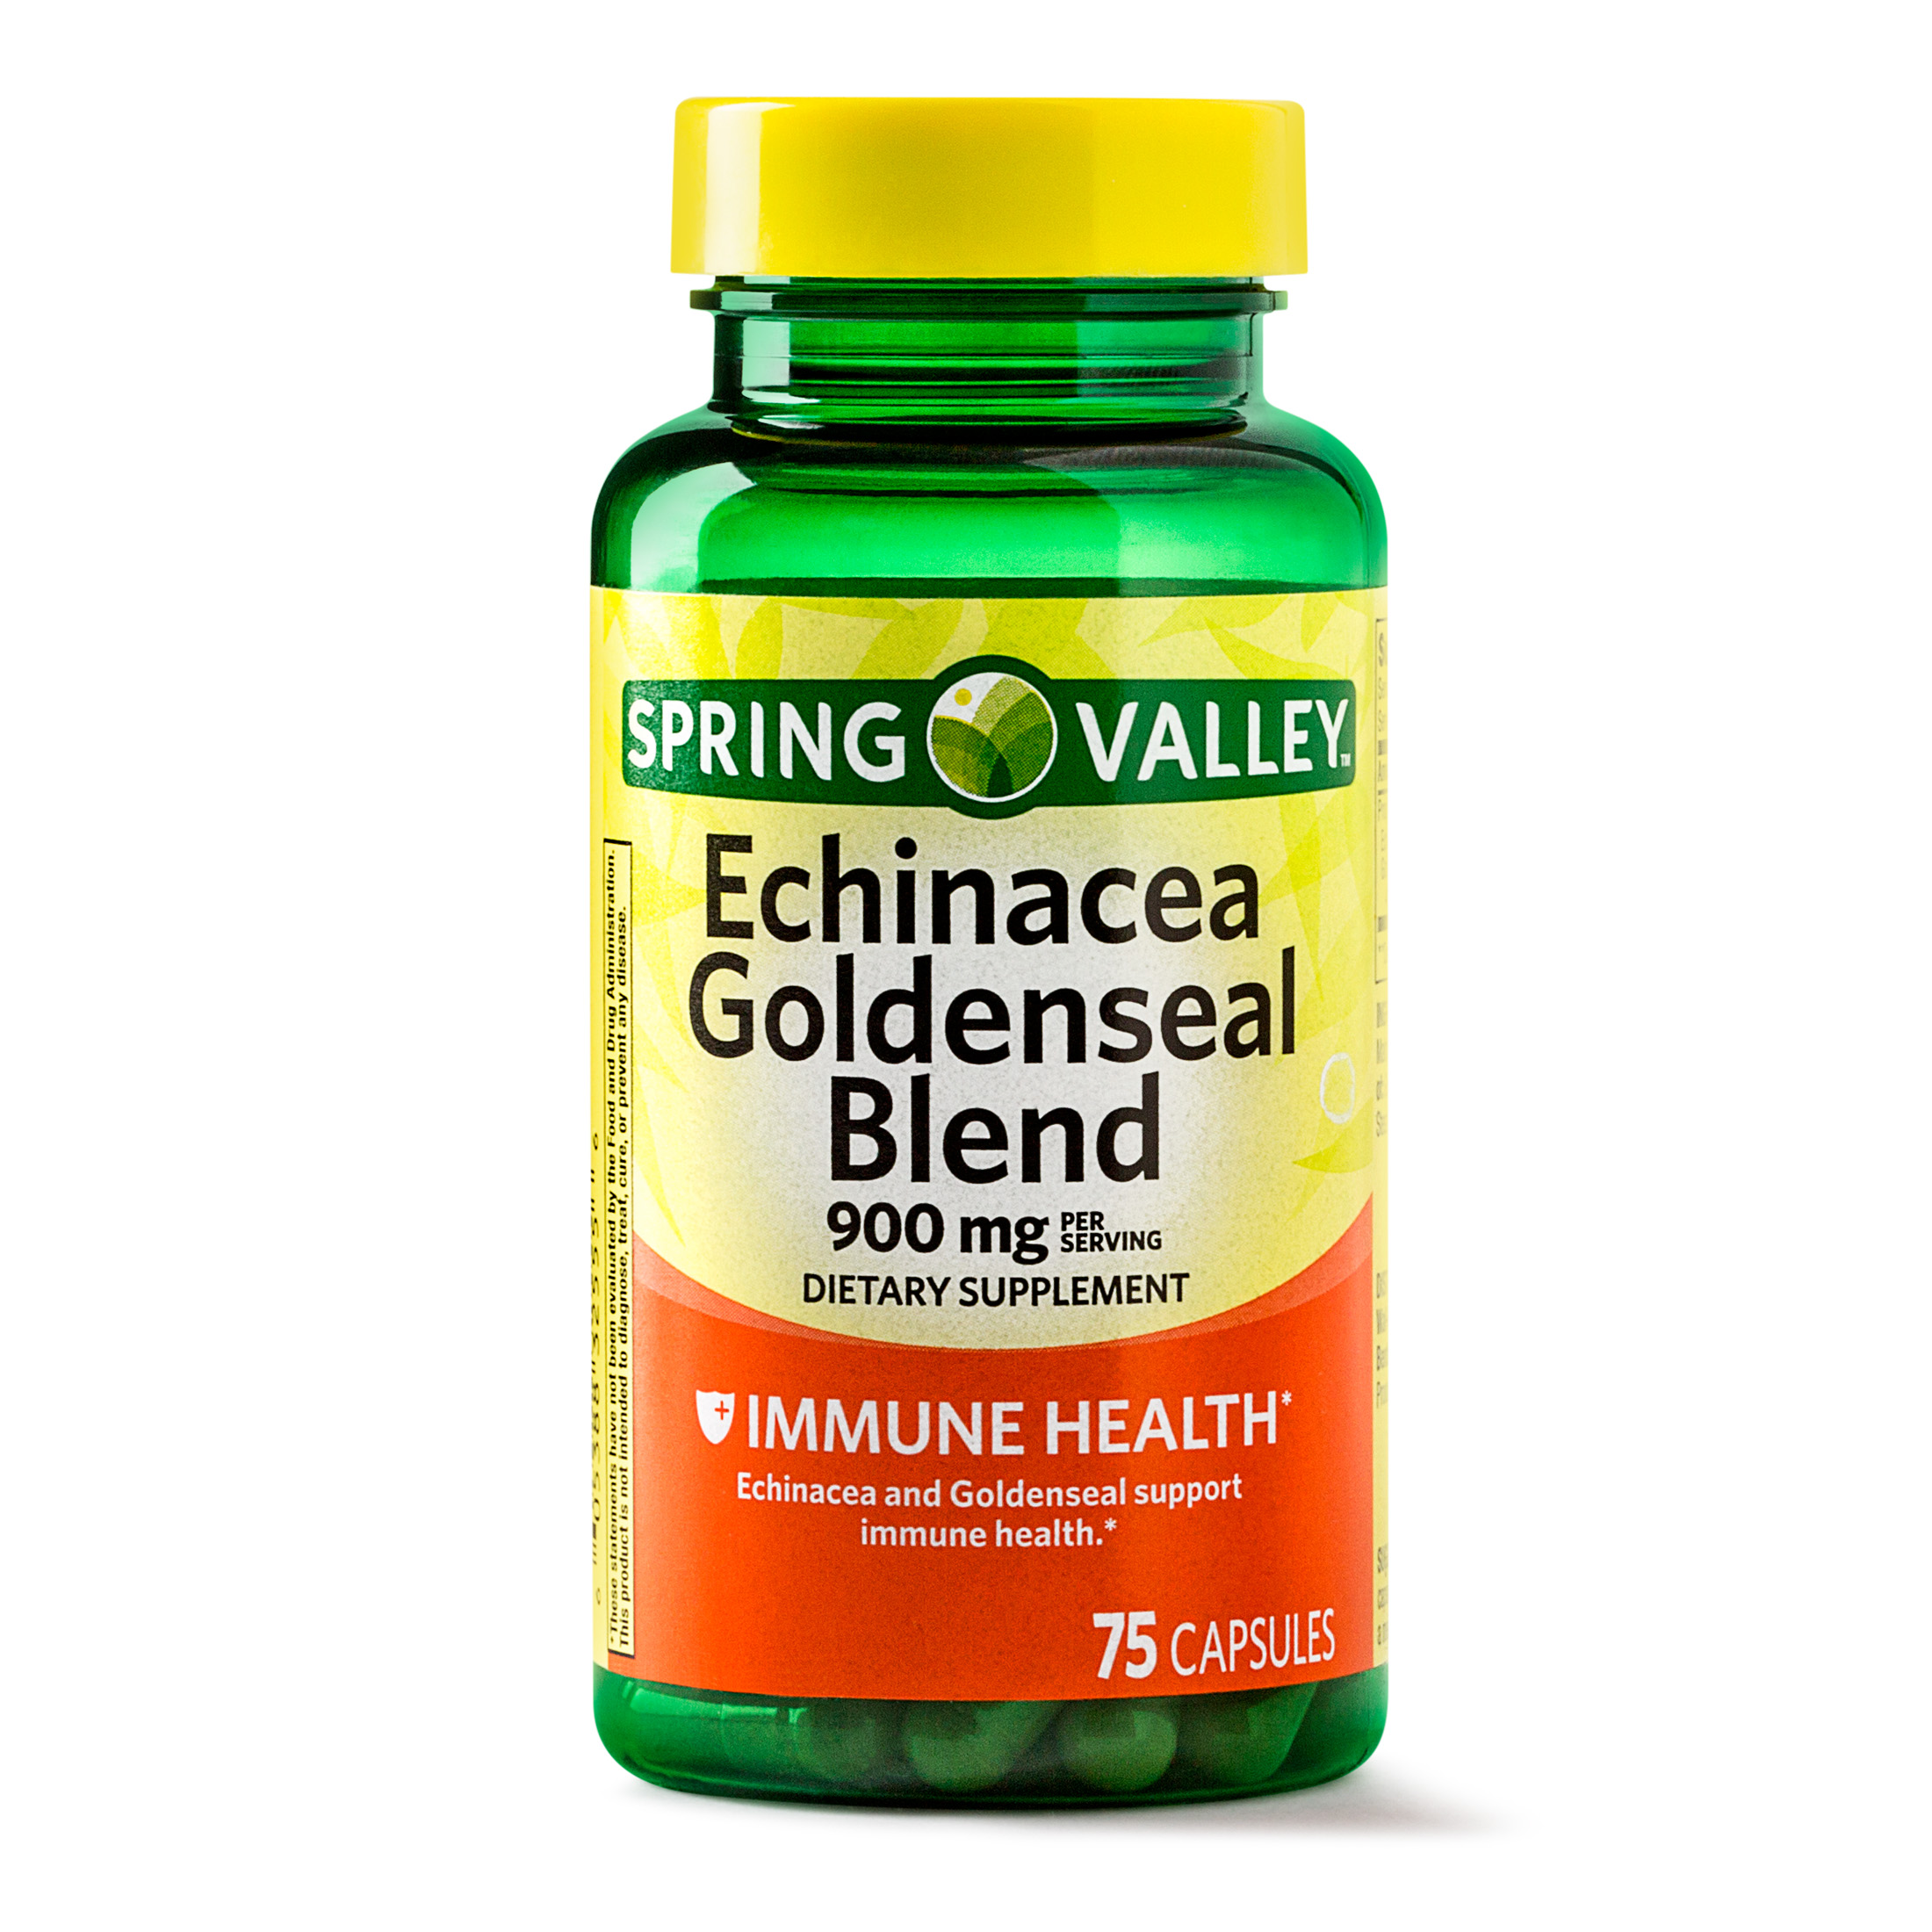 Spring Valley Echinacea Goldenseal Blend Capsules, 900 mg, 75 Ct